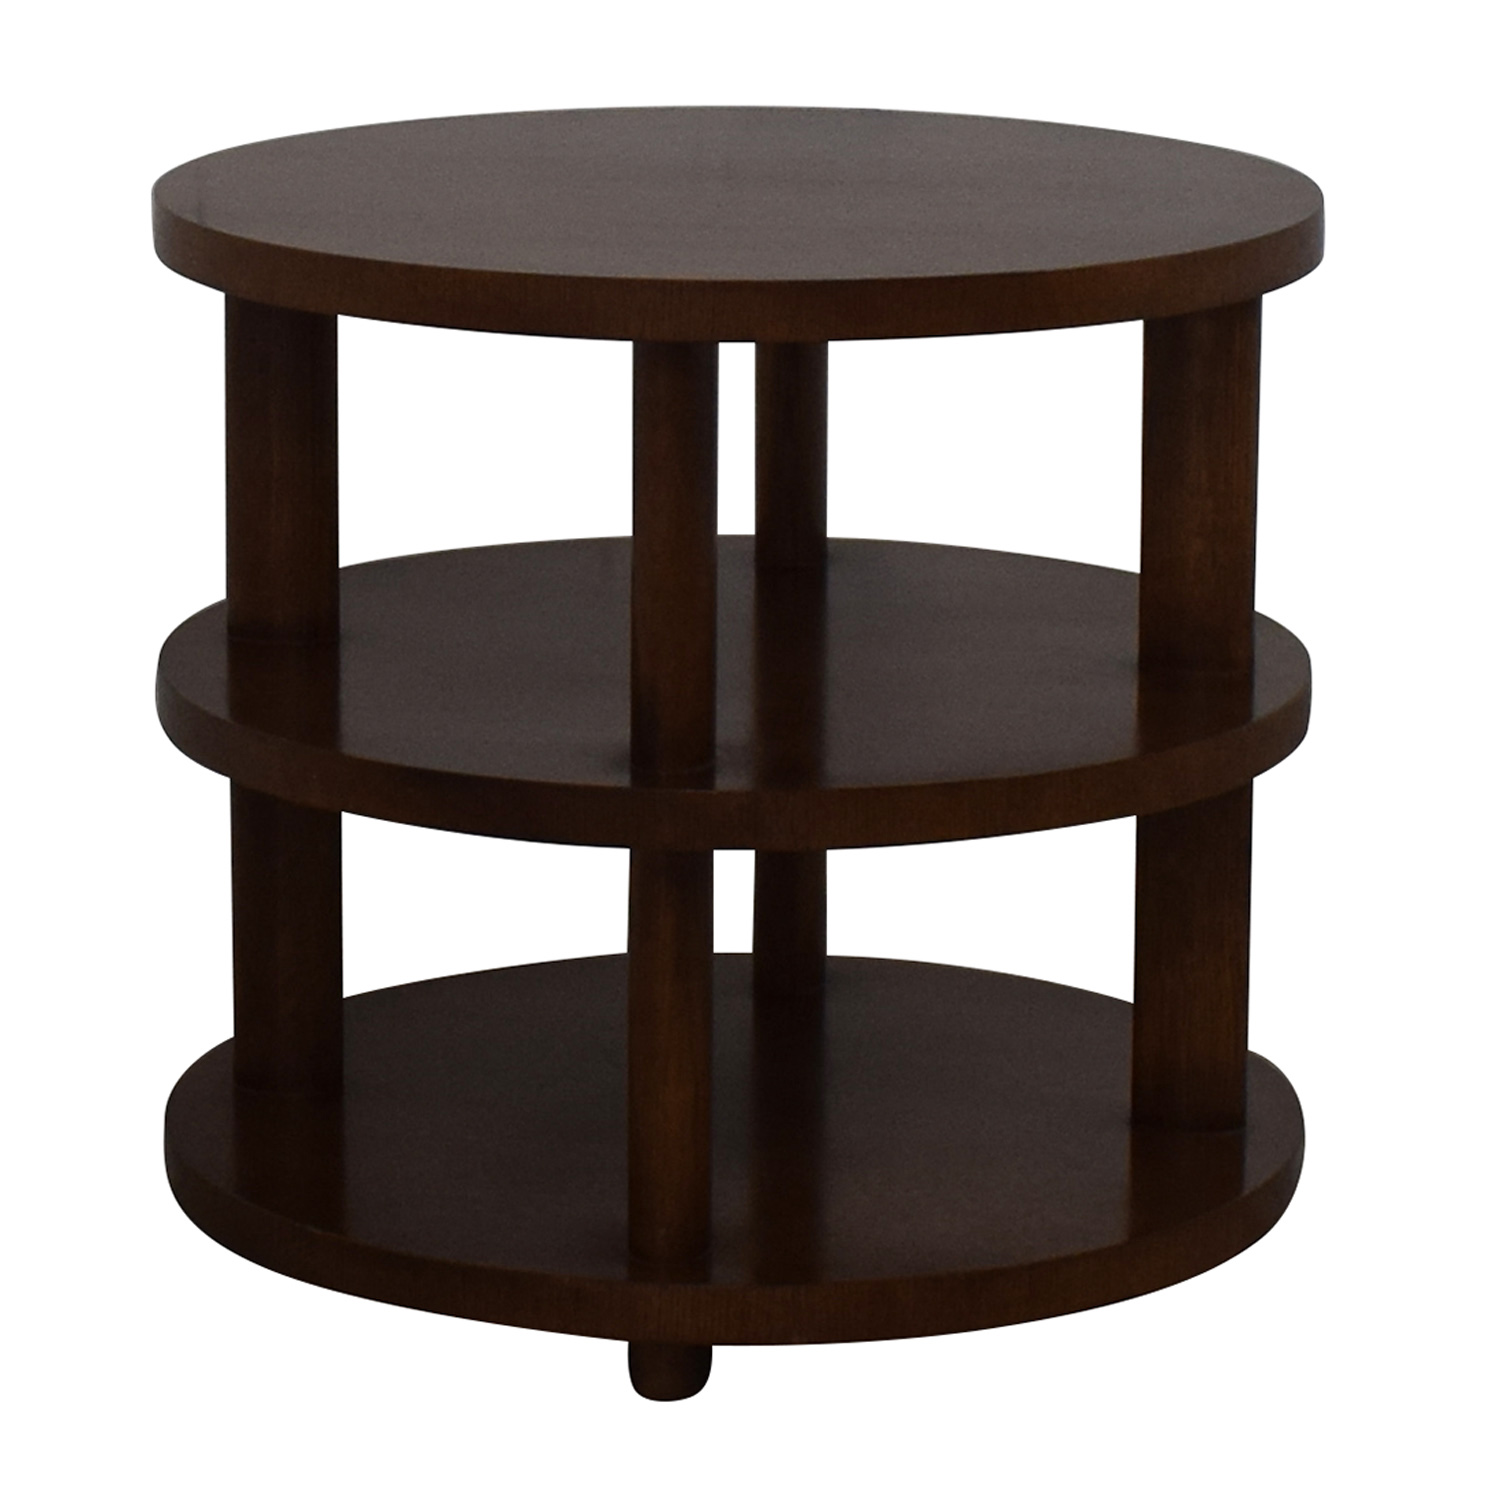 Baker Furniture Barbara Barry Round Tiered Occasional Table / Tables